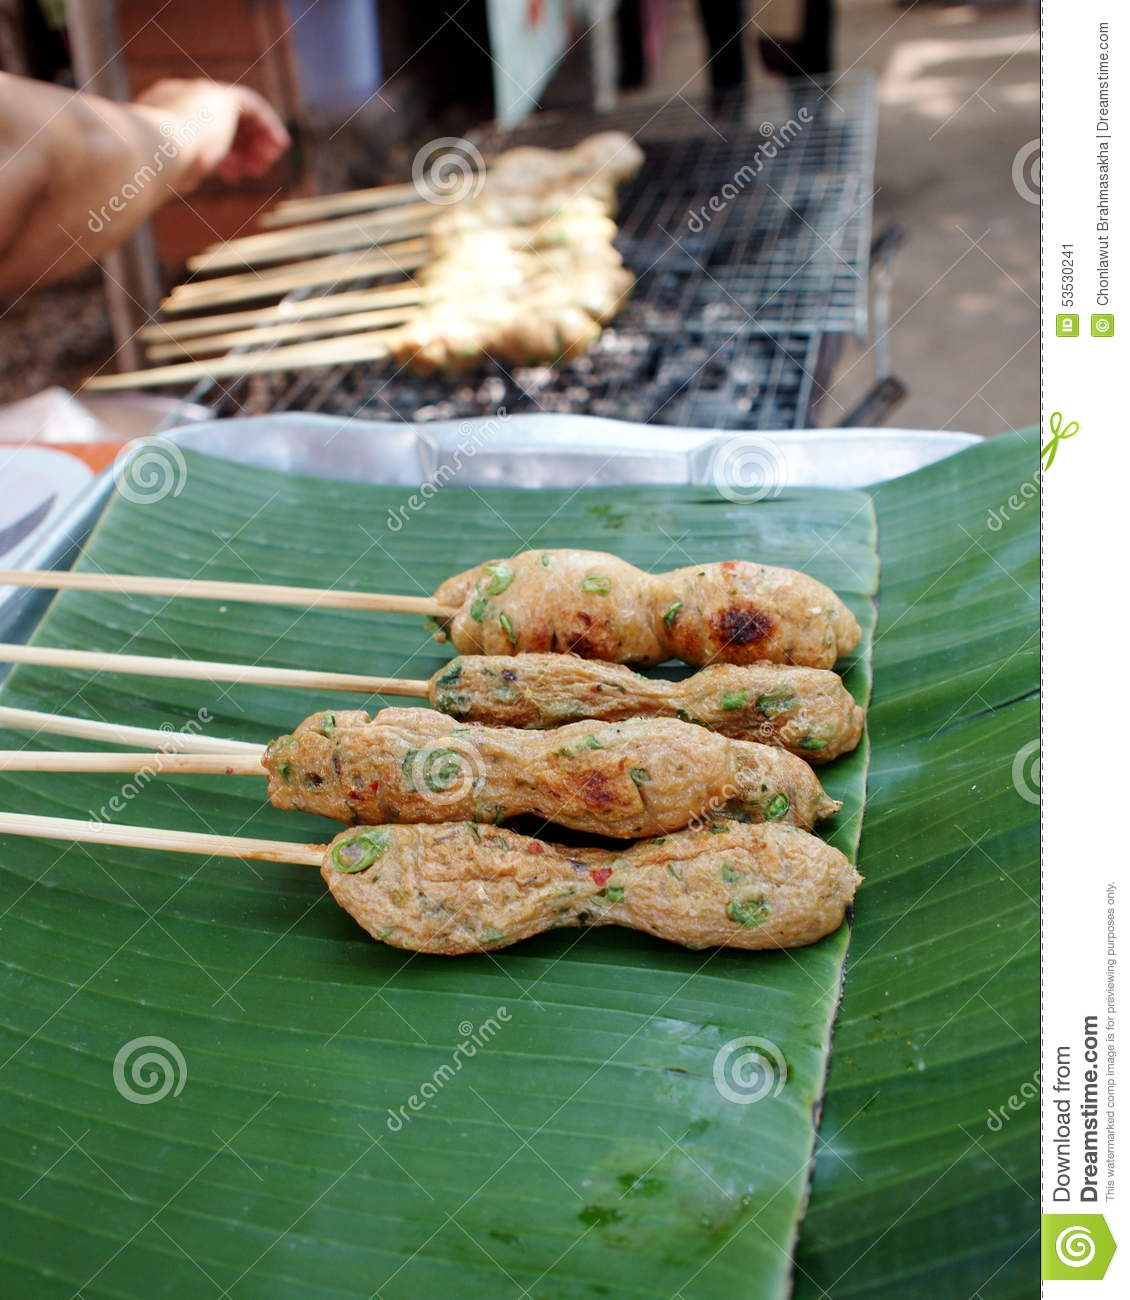 Street Food Stock Photo - Image: 53530241